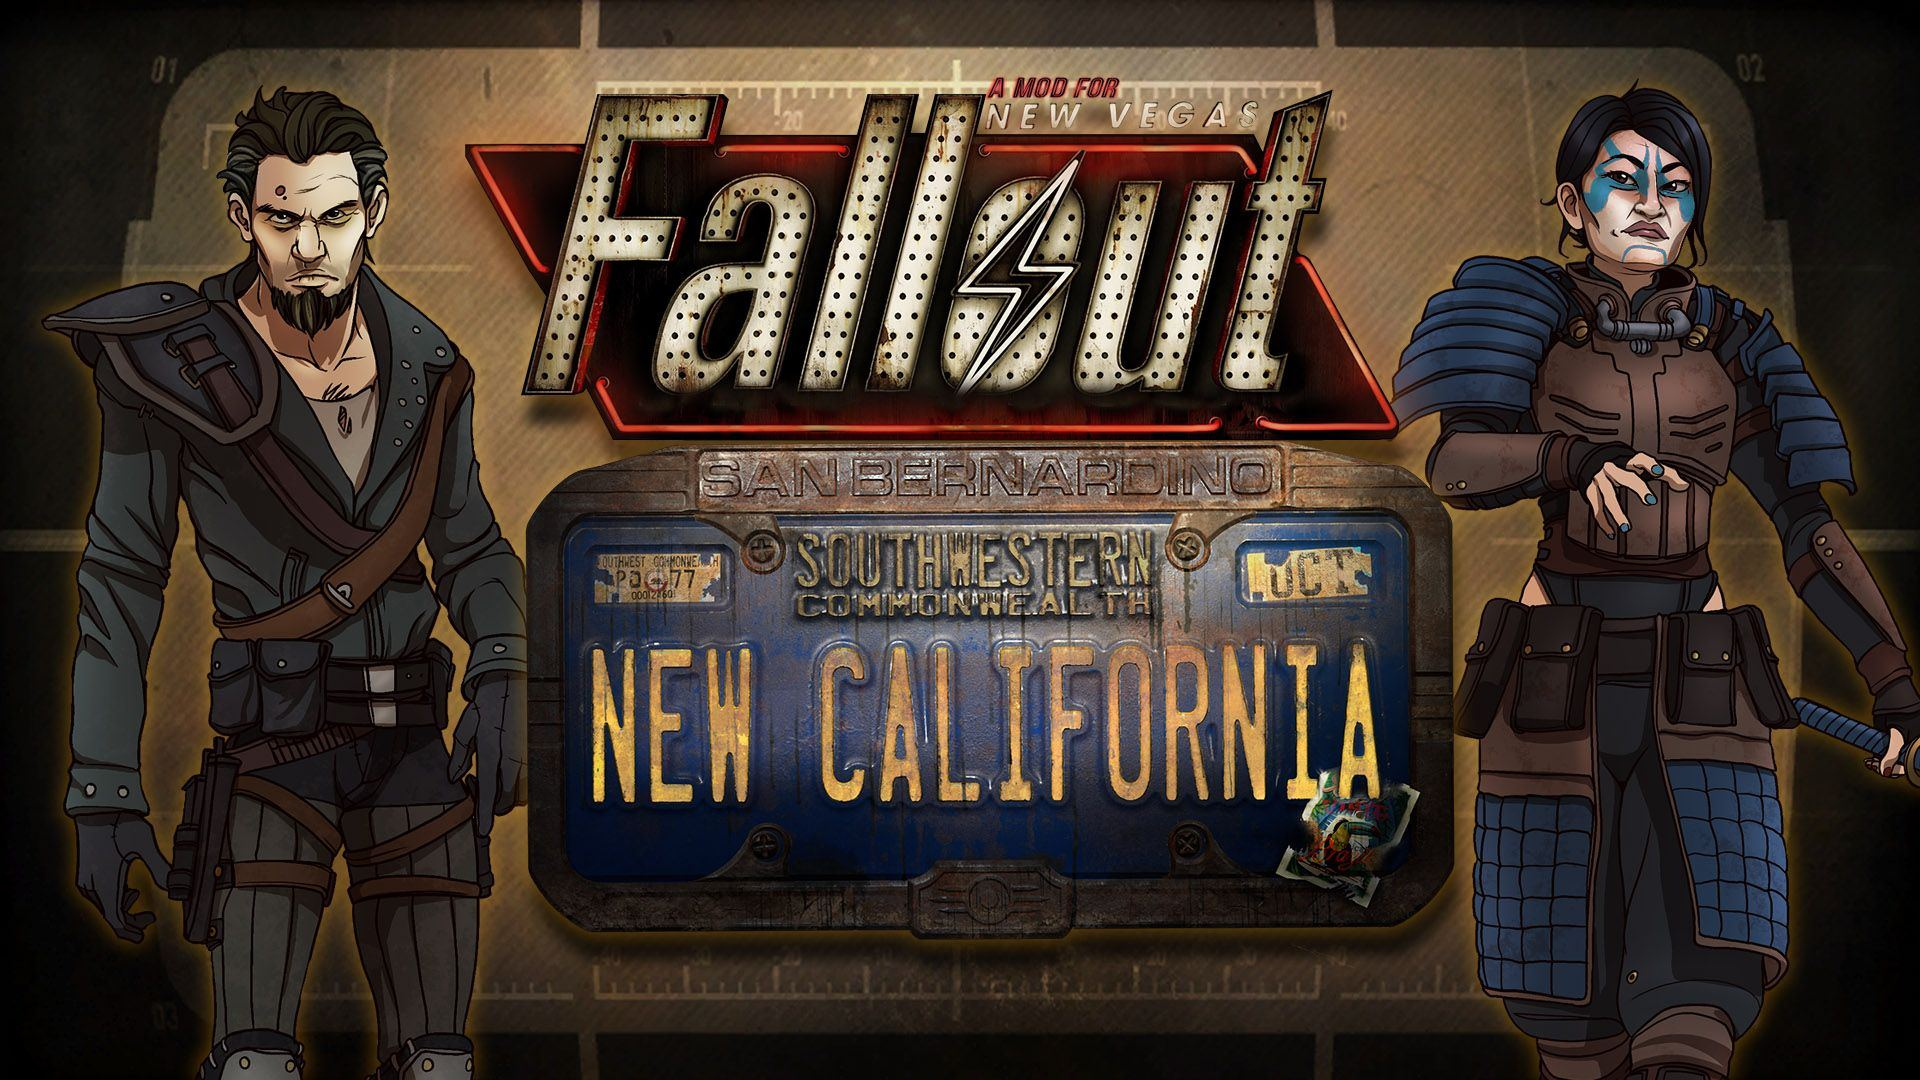 Is there another Fallout game coming out? - Answers